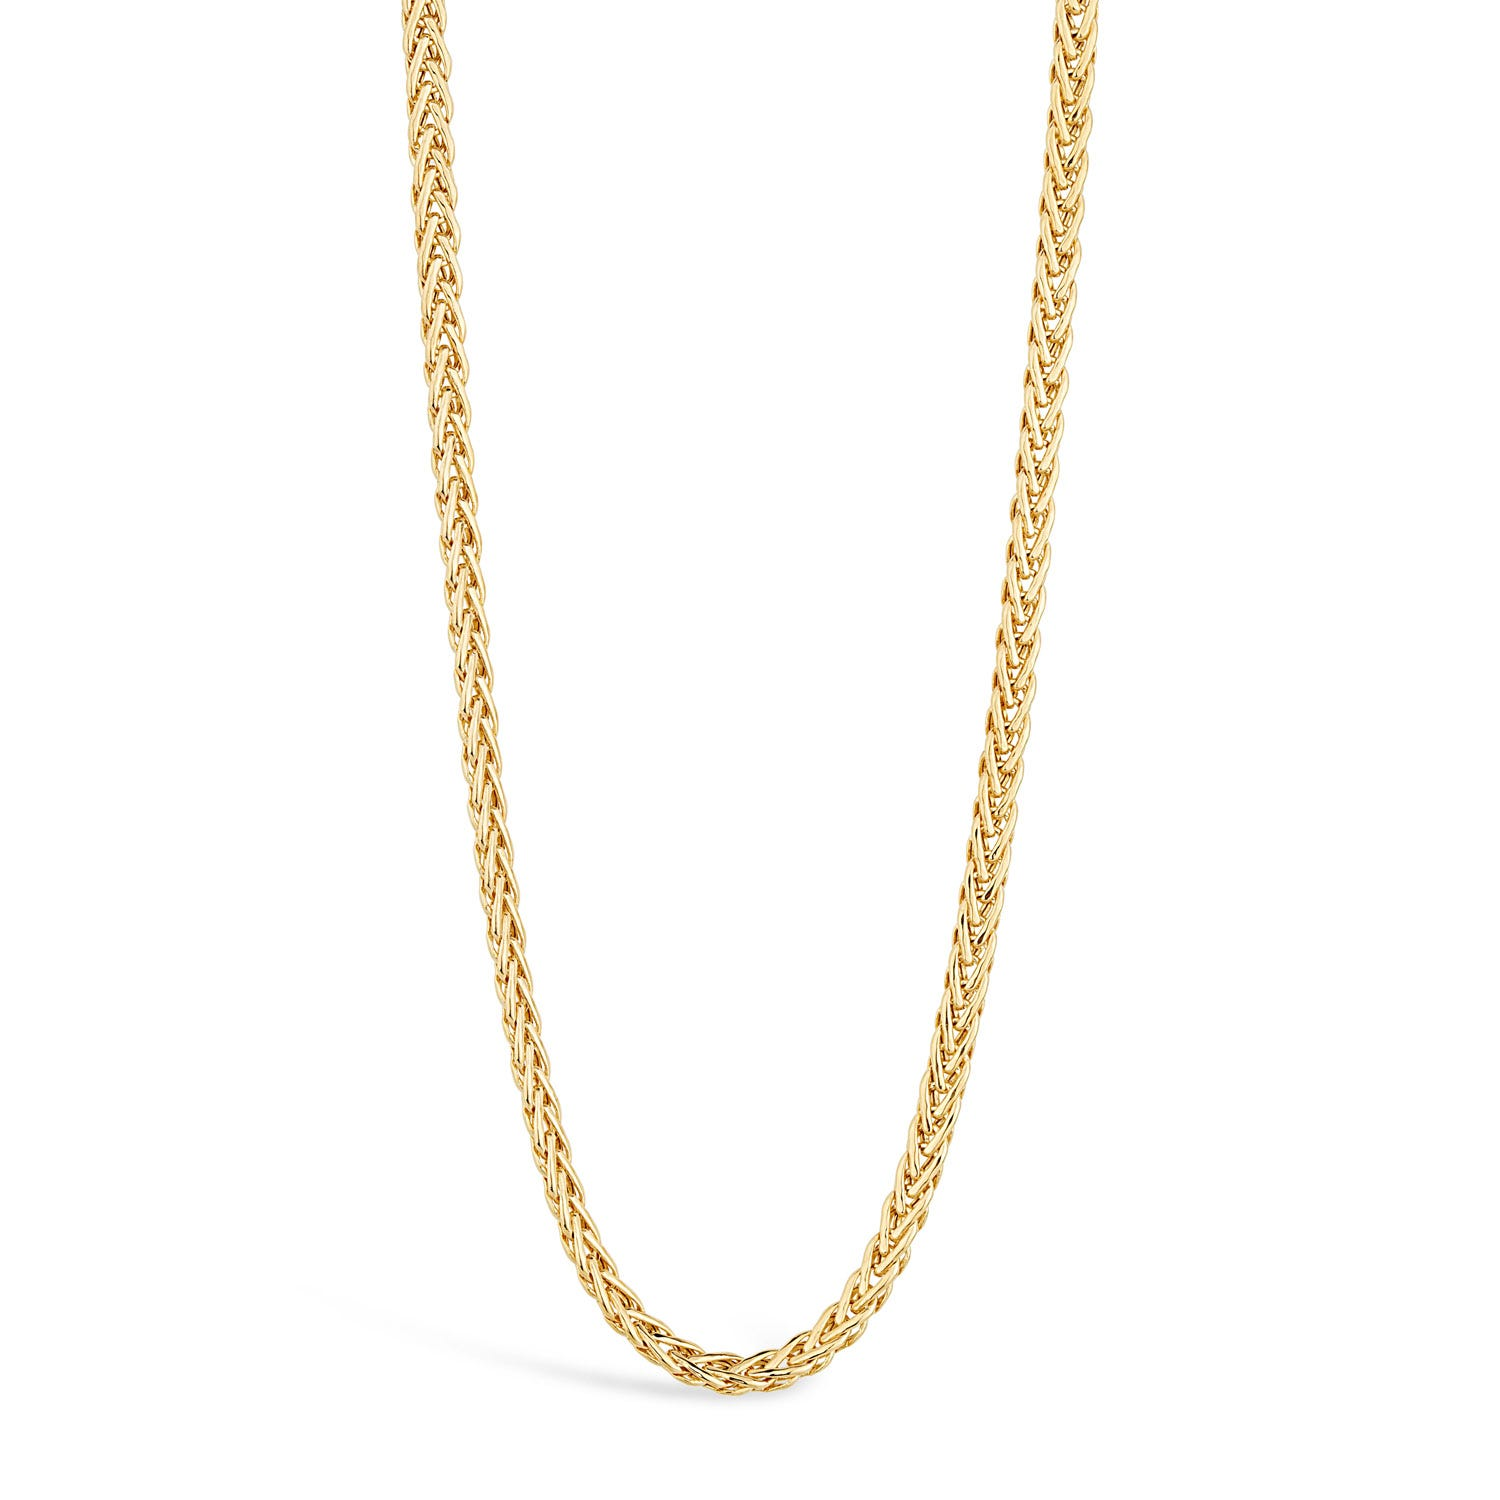 9ct Yellow Gold Flat Polished Woven Necklet